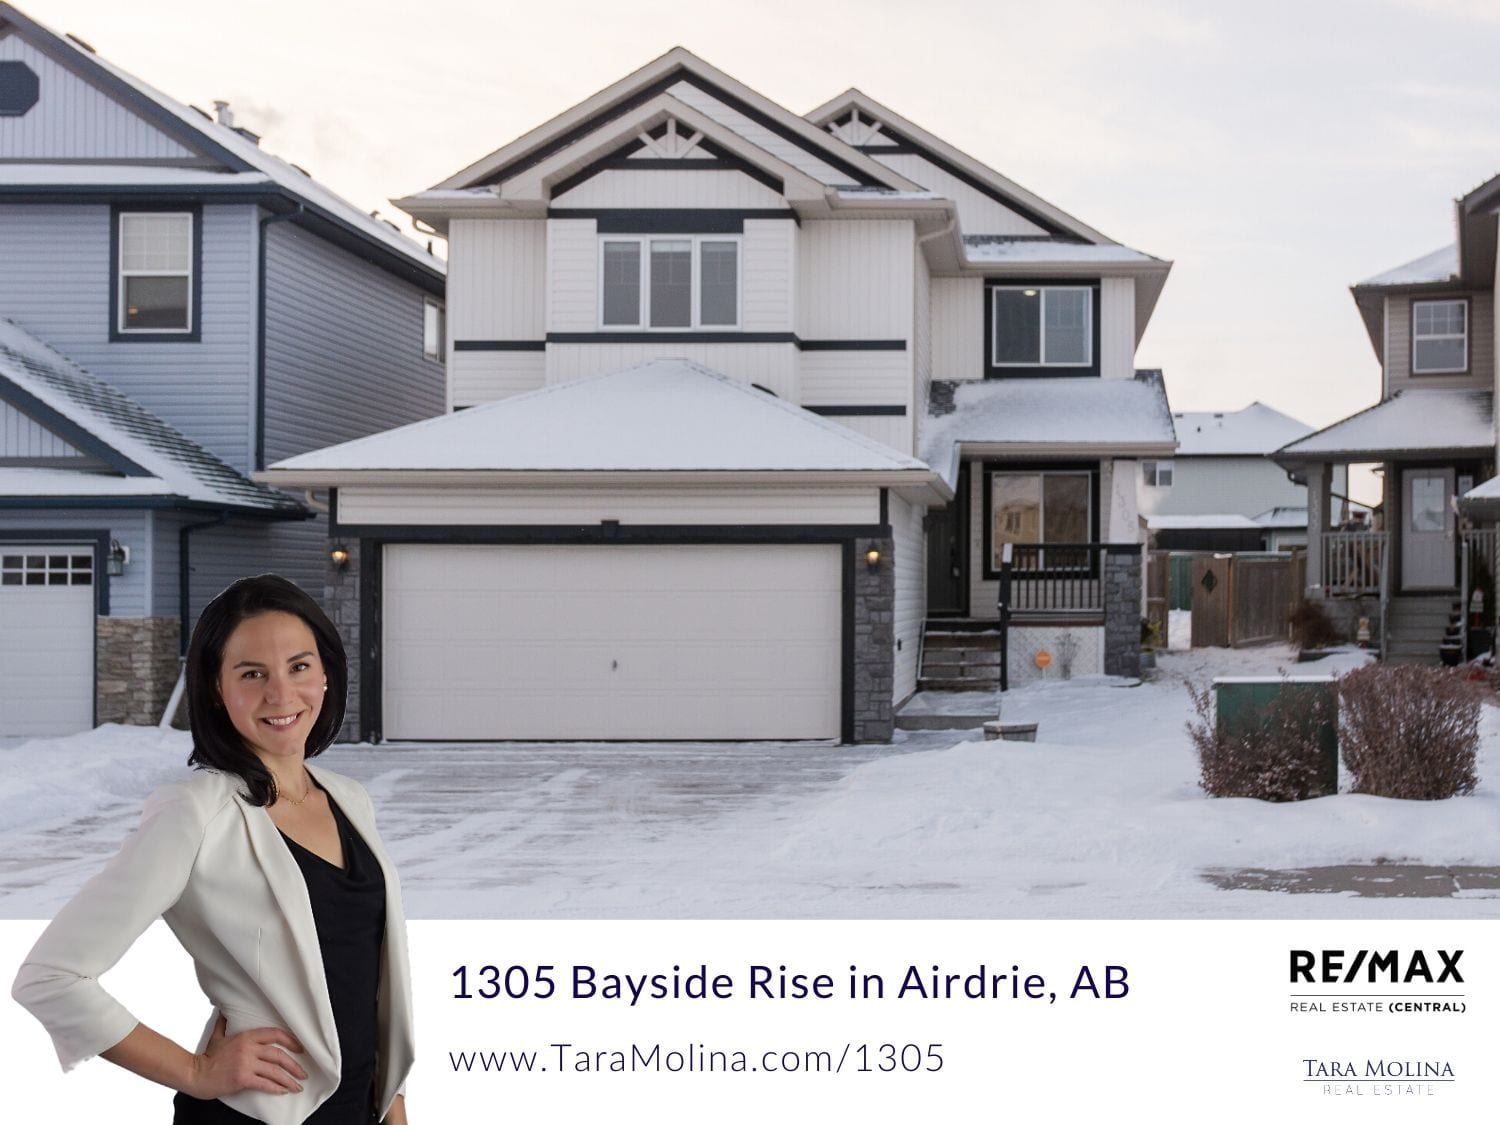 1305 Bayside Rise in Airdrie, AB